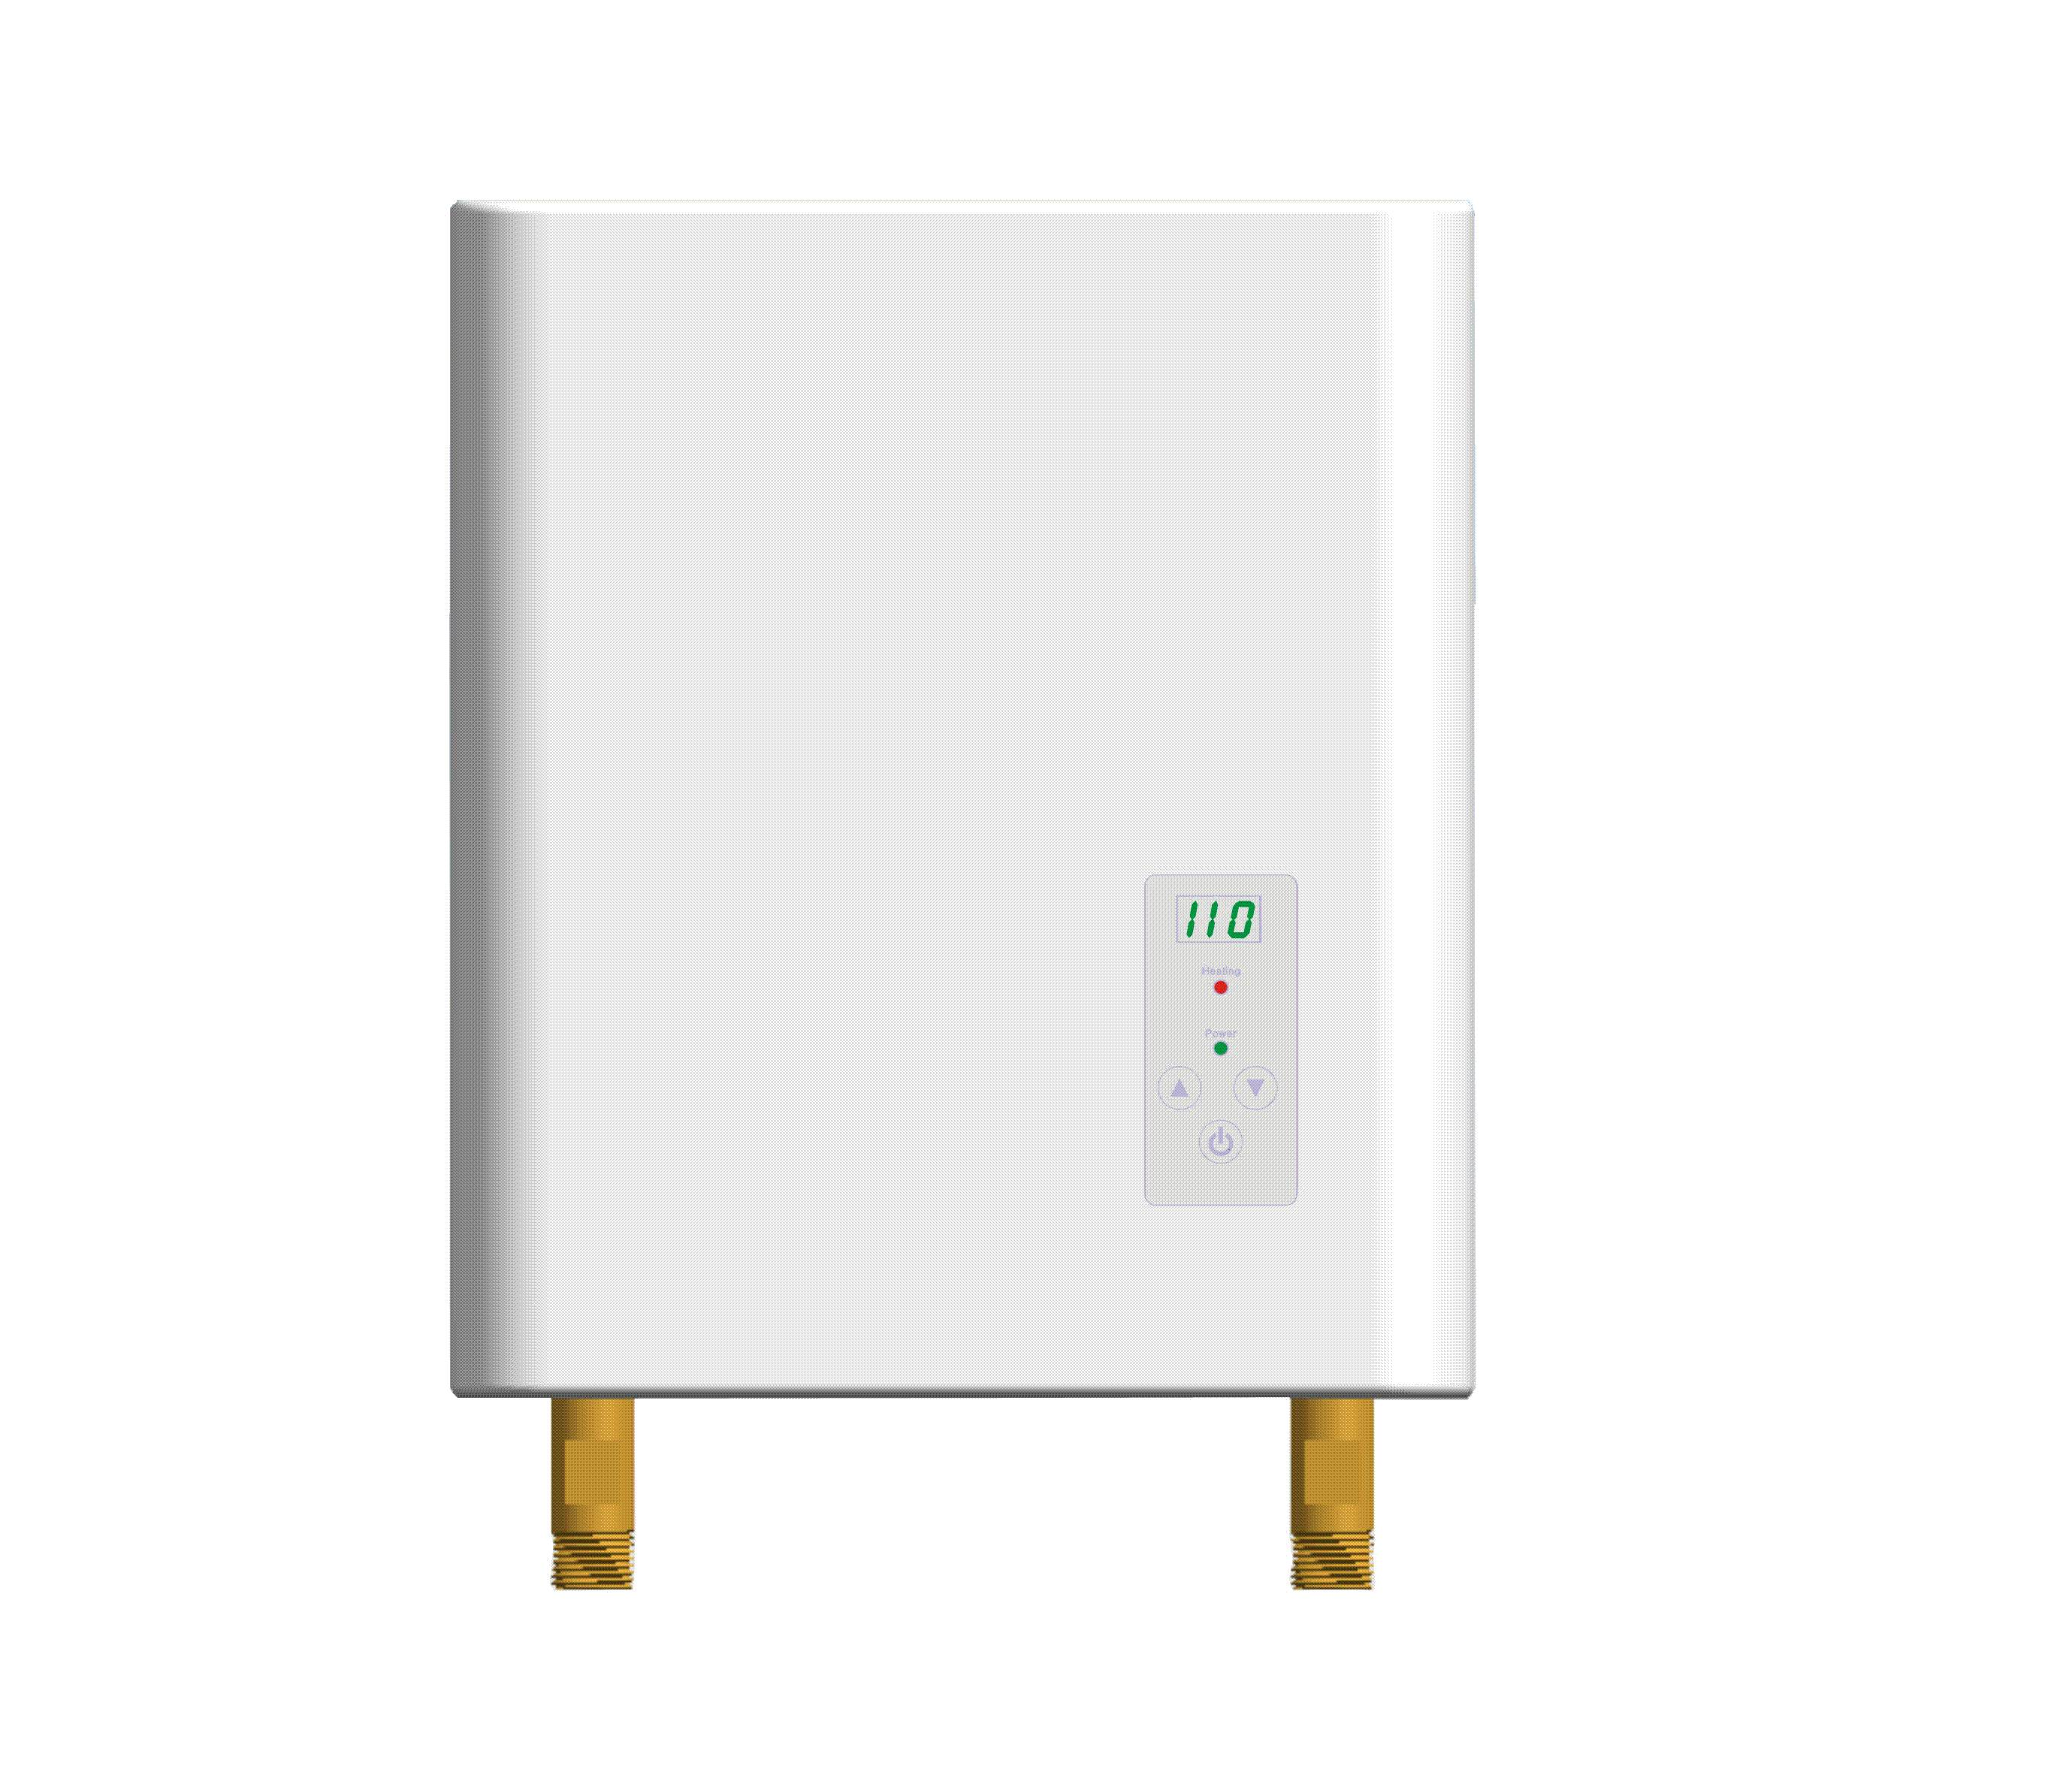 The tankless Electric water heater HQ-T070-HEA